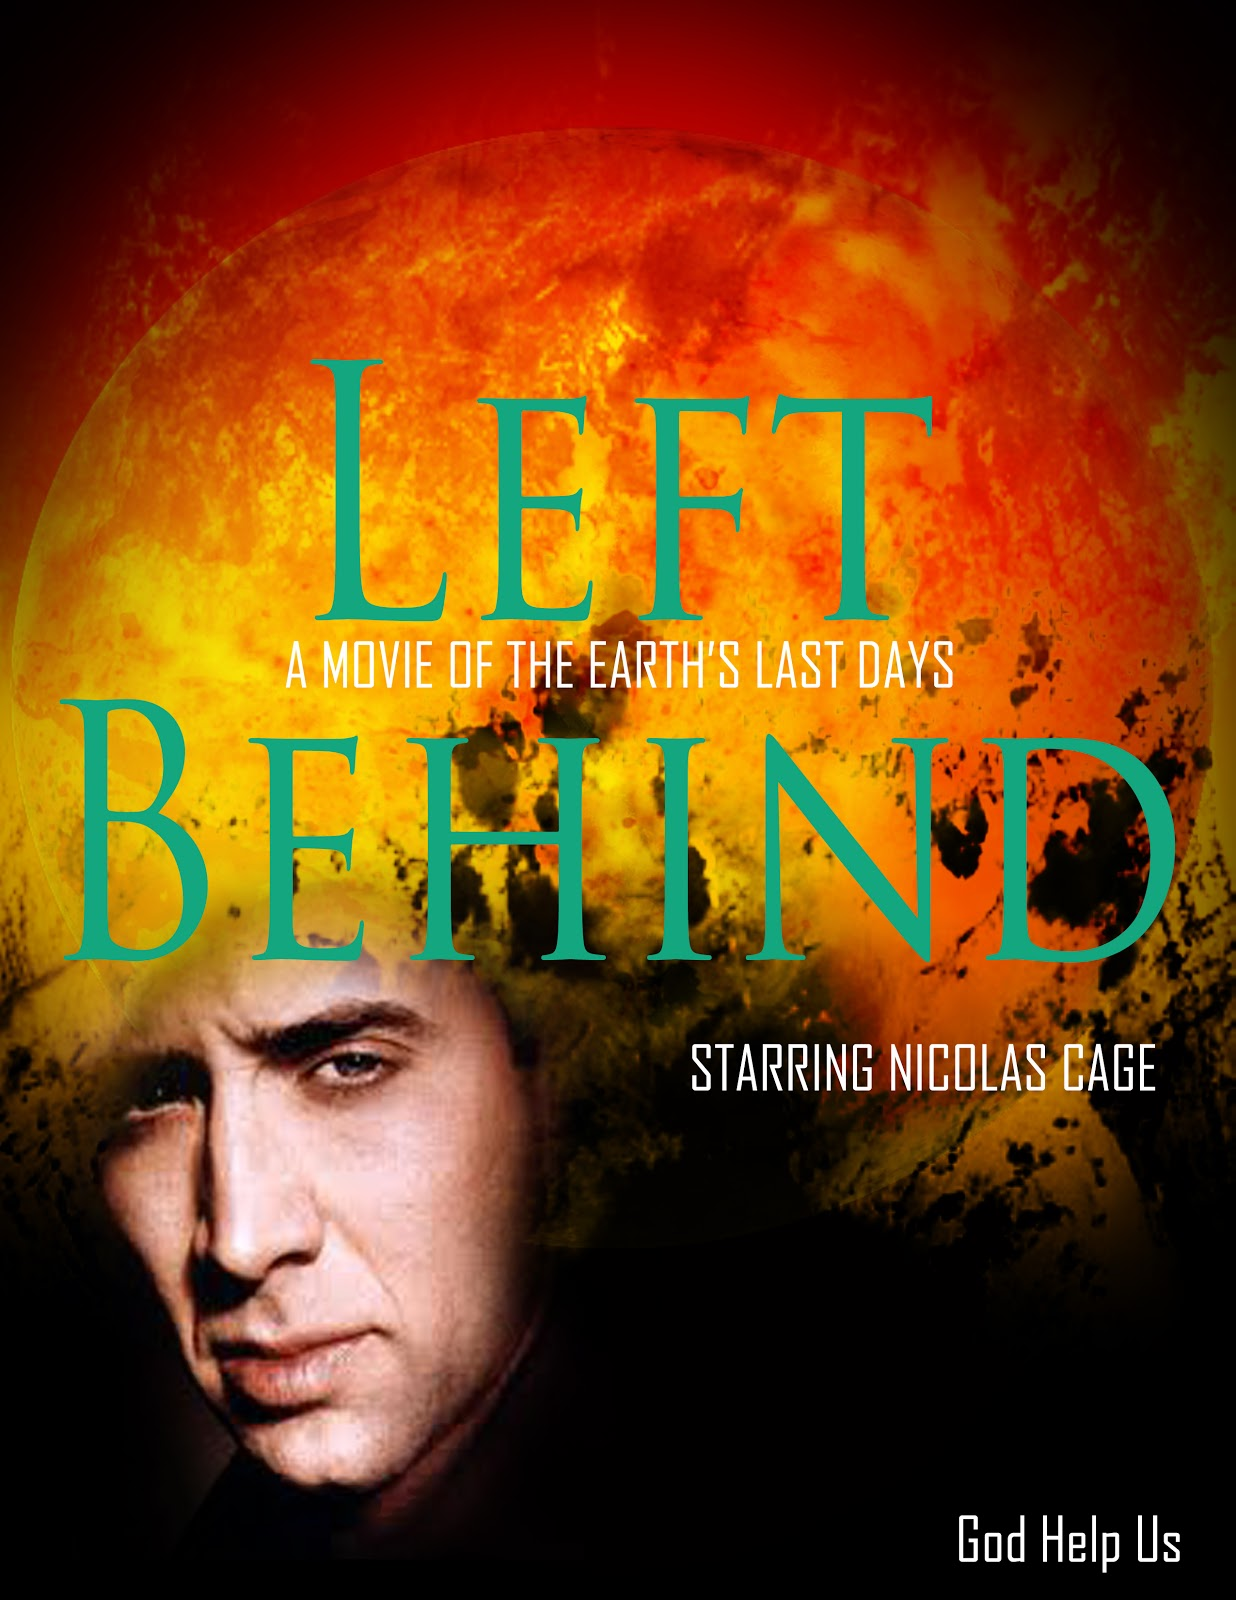 Living for Eternity: New 'Left Behind' Movie staring Nicolas Cage